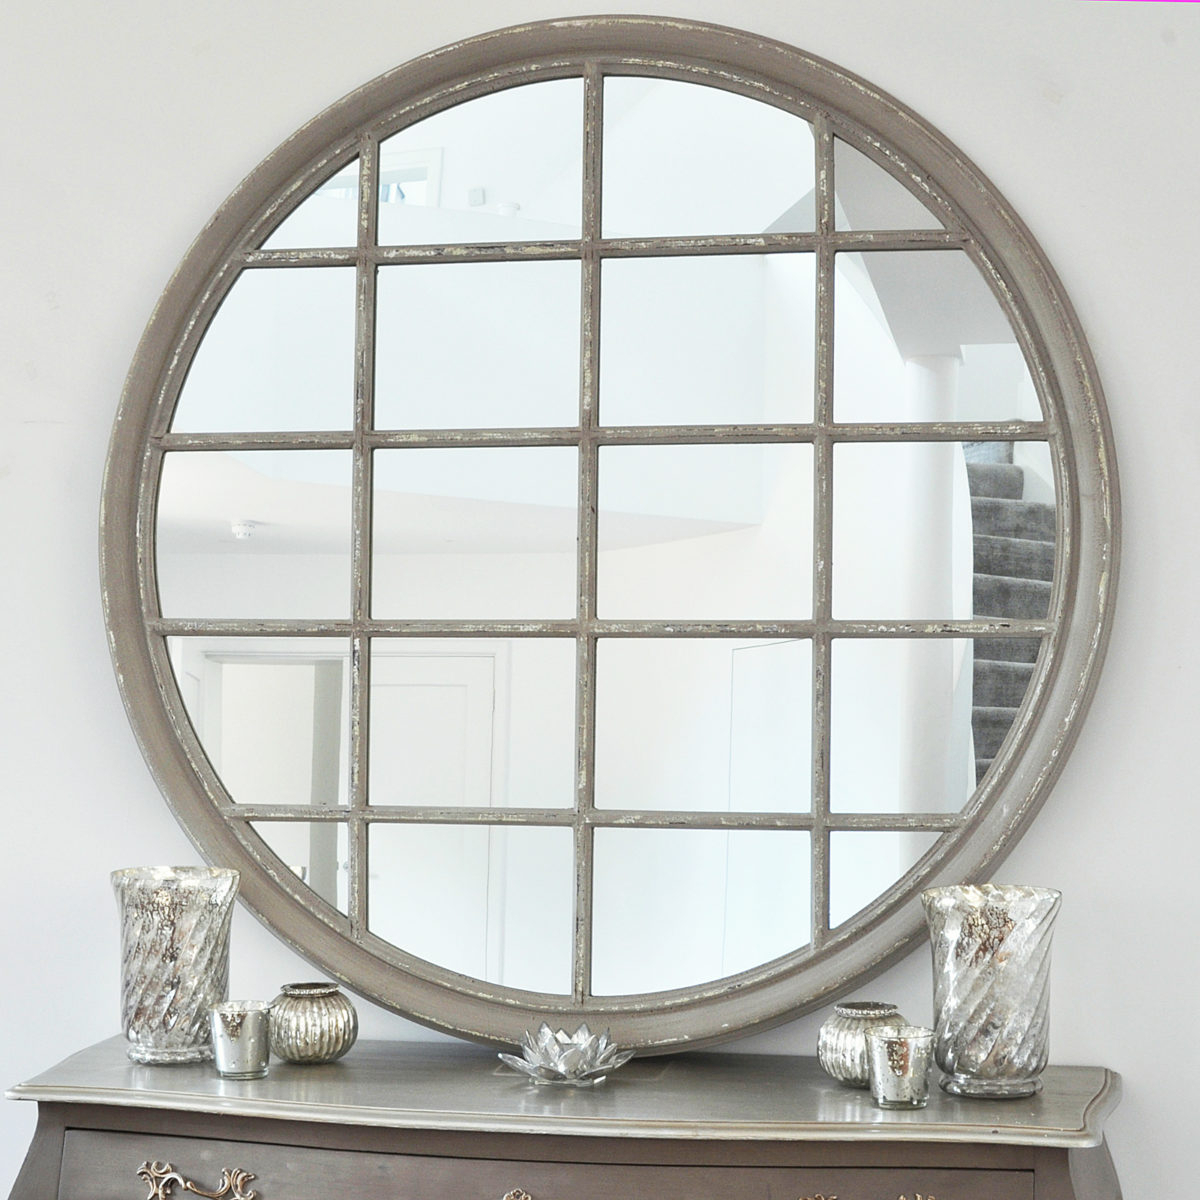 Large Round Wall Mirrors Throughout Current Large Round Grey Window Wall Mirror (View 3 of 20)